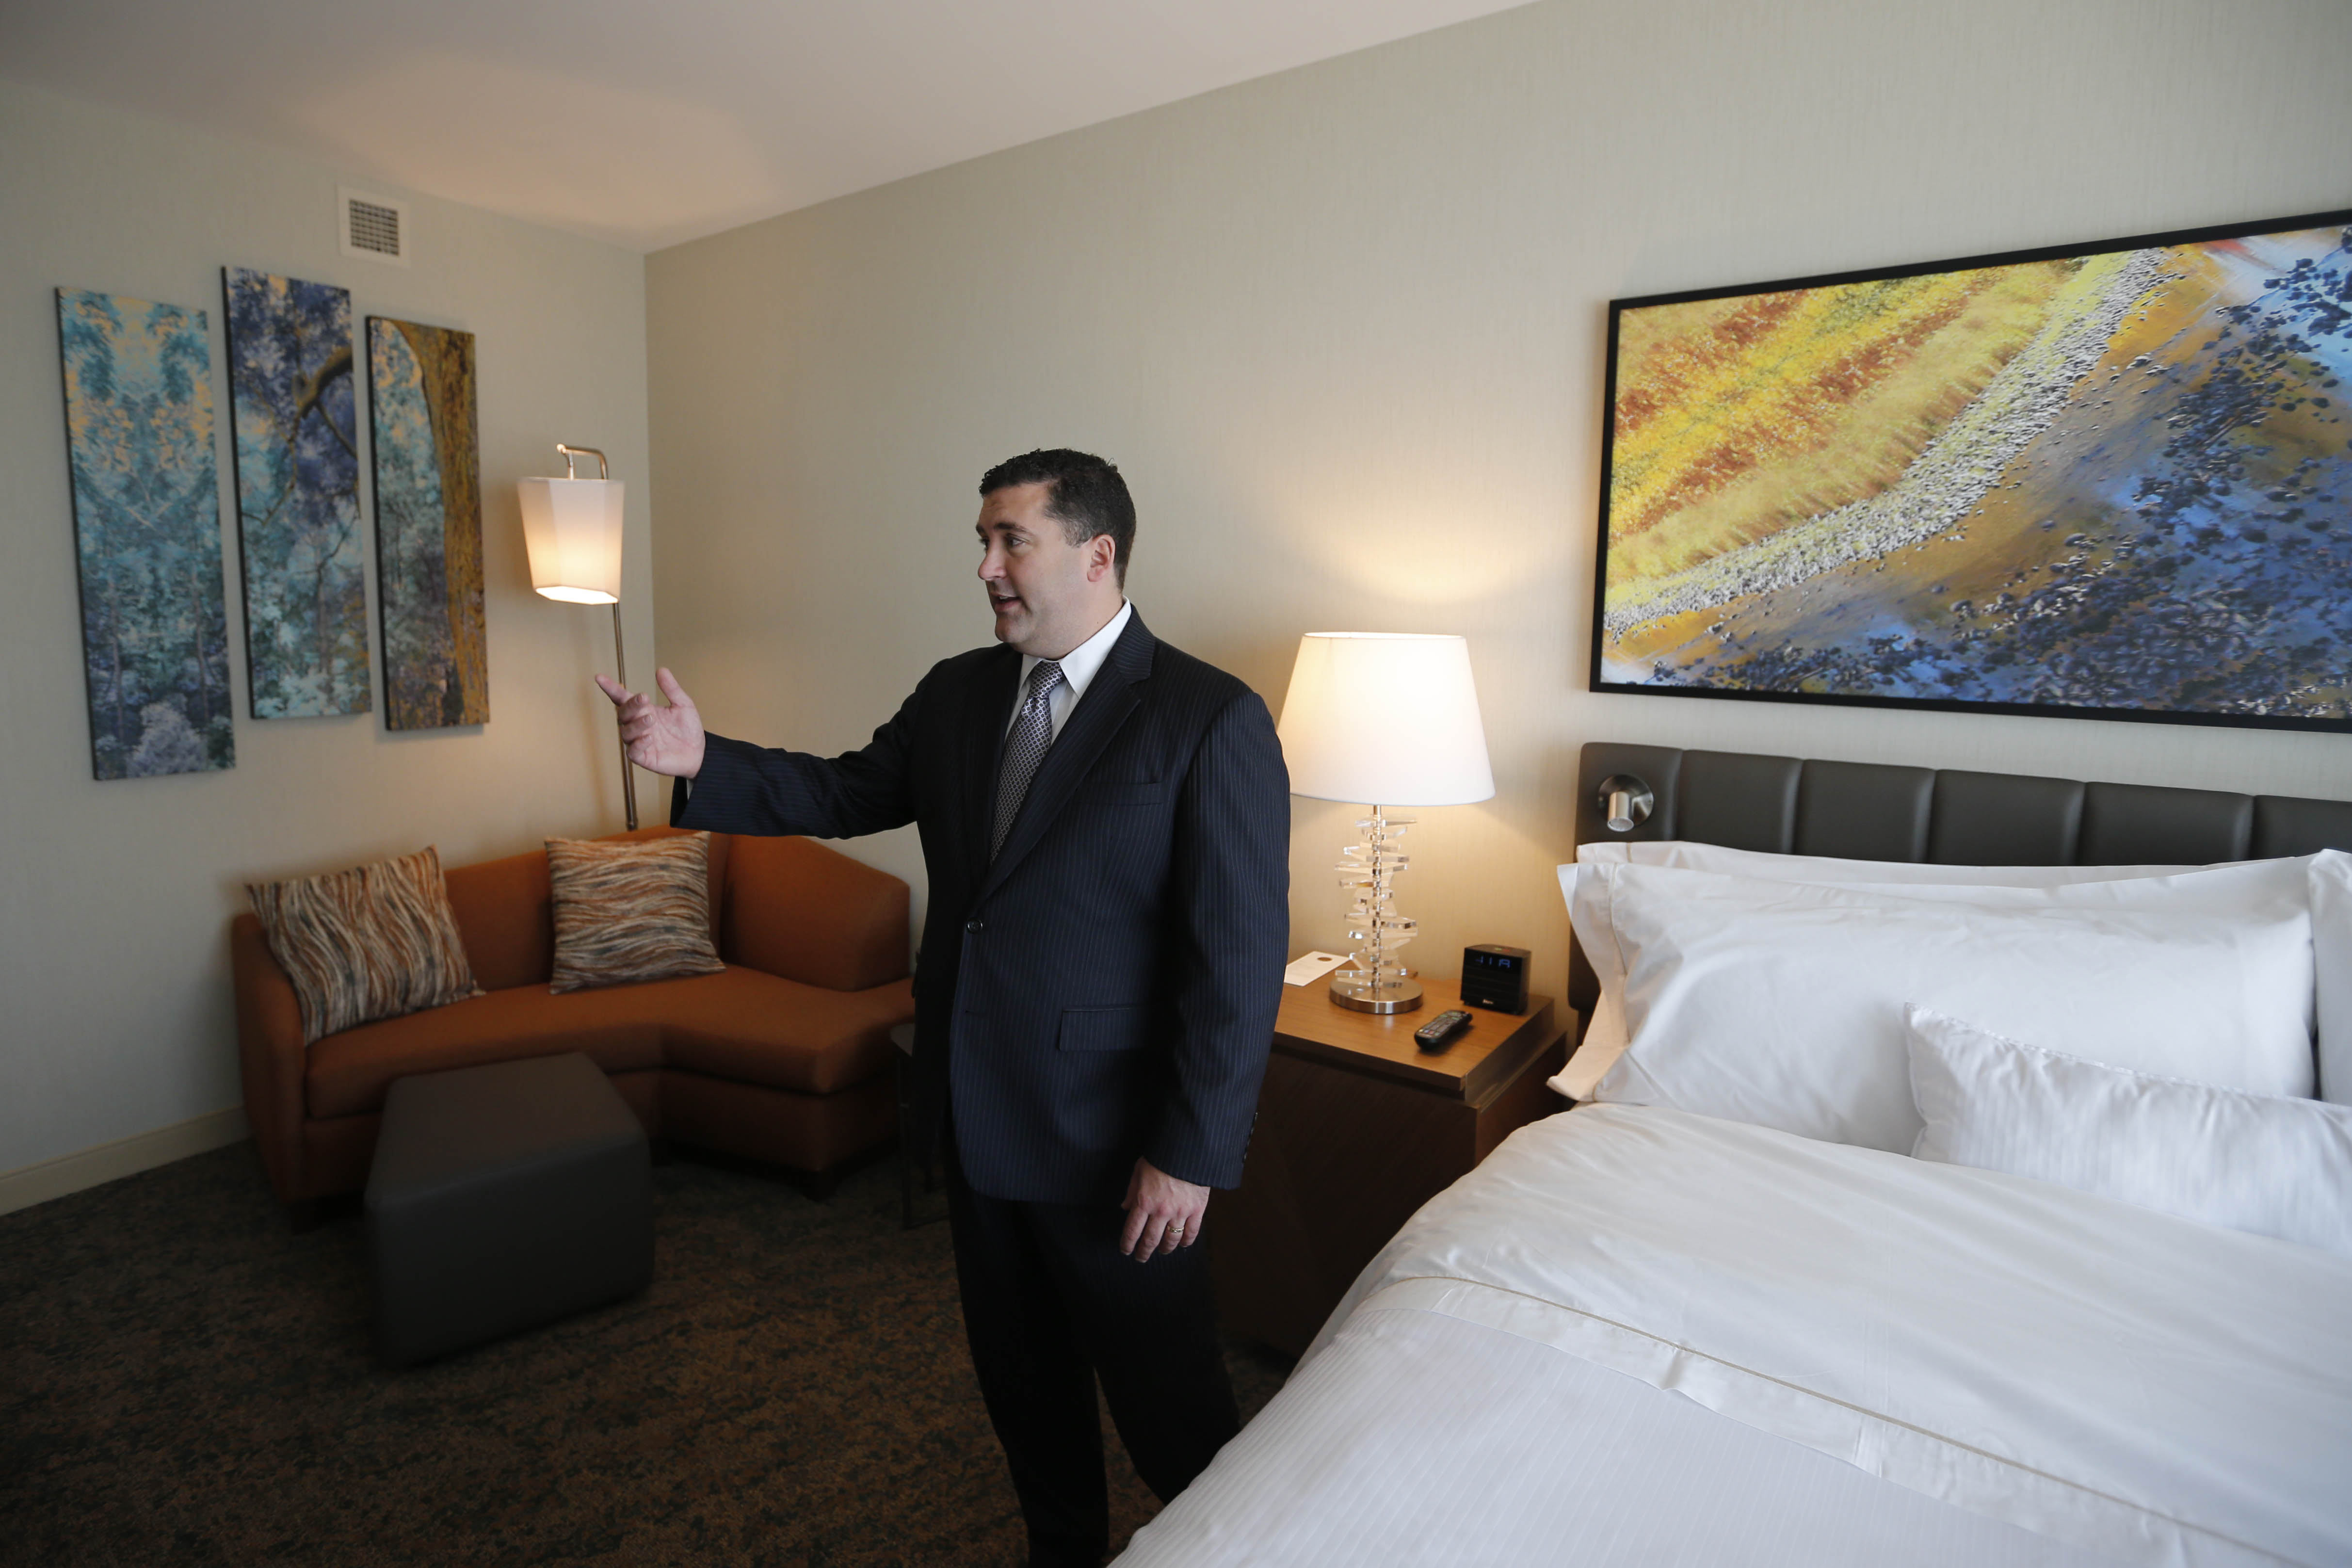 Thomas Long, general manager of the new Westin Hotel, shows off a guest room during a tour. Long, a South Buffalo native, was a top manager at the Waldorf before he quit earlier this year to come home and run the Westin for Delaware North. (Derek Gee/Buffalo News)